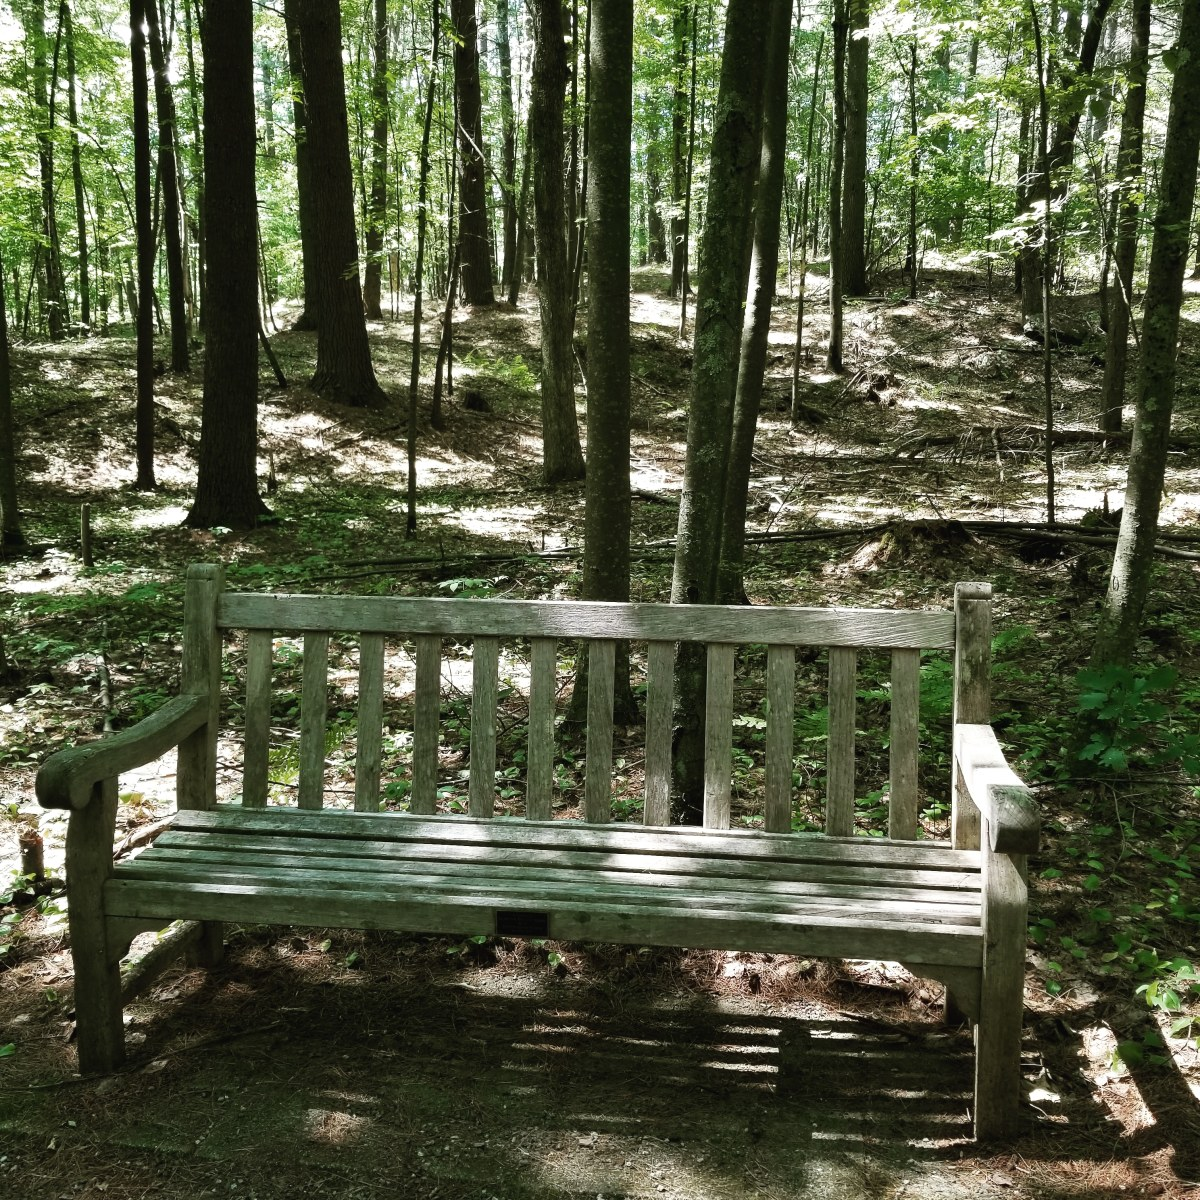 Wooden bench on the forest path.  Perfect place to sit on a sun-dappled summer day.